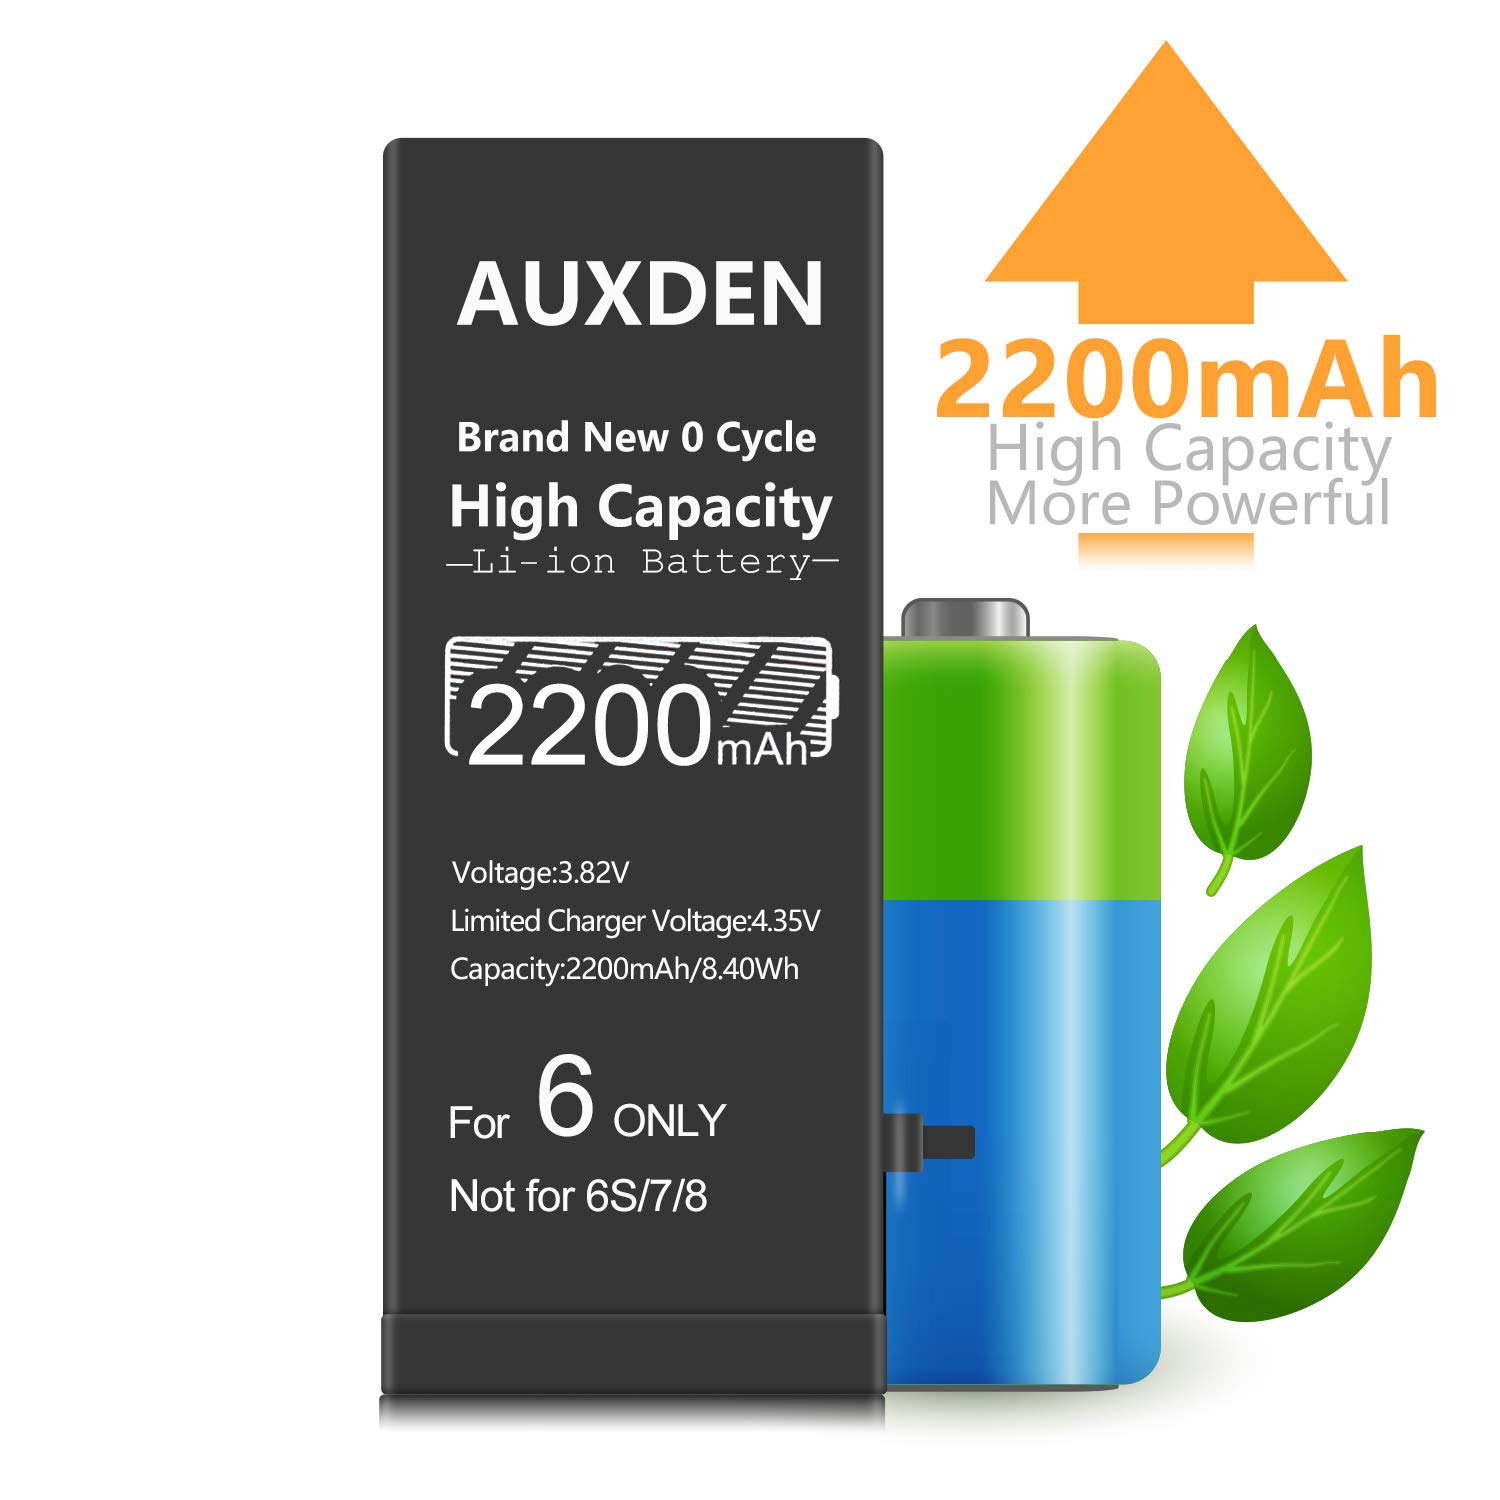 2200mAh High Capacity Battery for iPhone 6S 28/% More Capacity, Longer Lasting Auxden New 0 Cycle Li-ion Battery Replacement With Complete Repair Tool Kits and Screen Protector